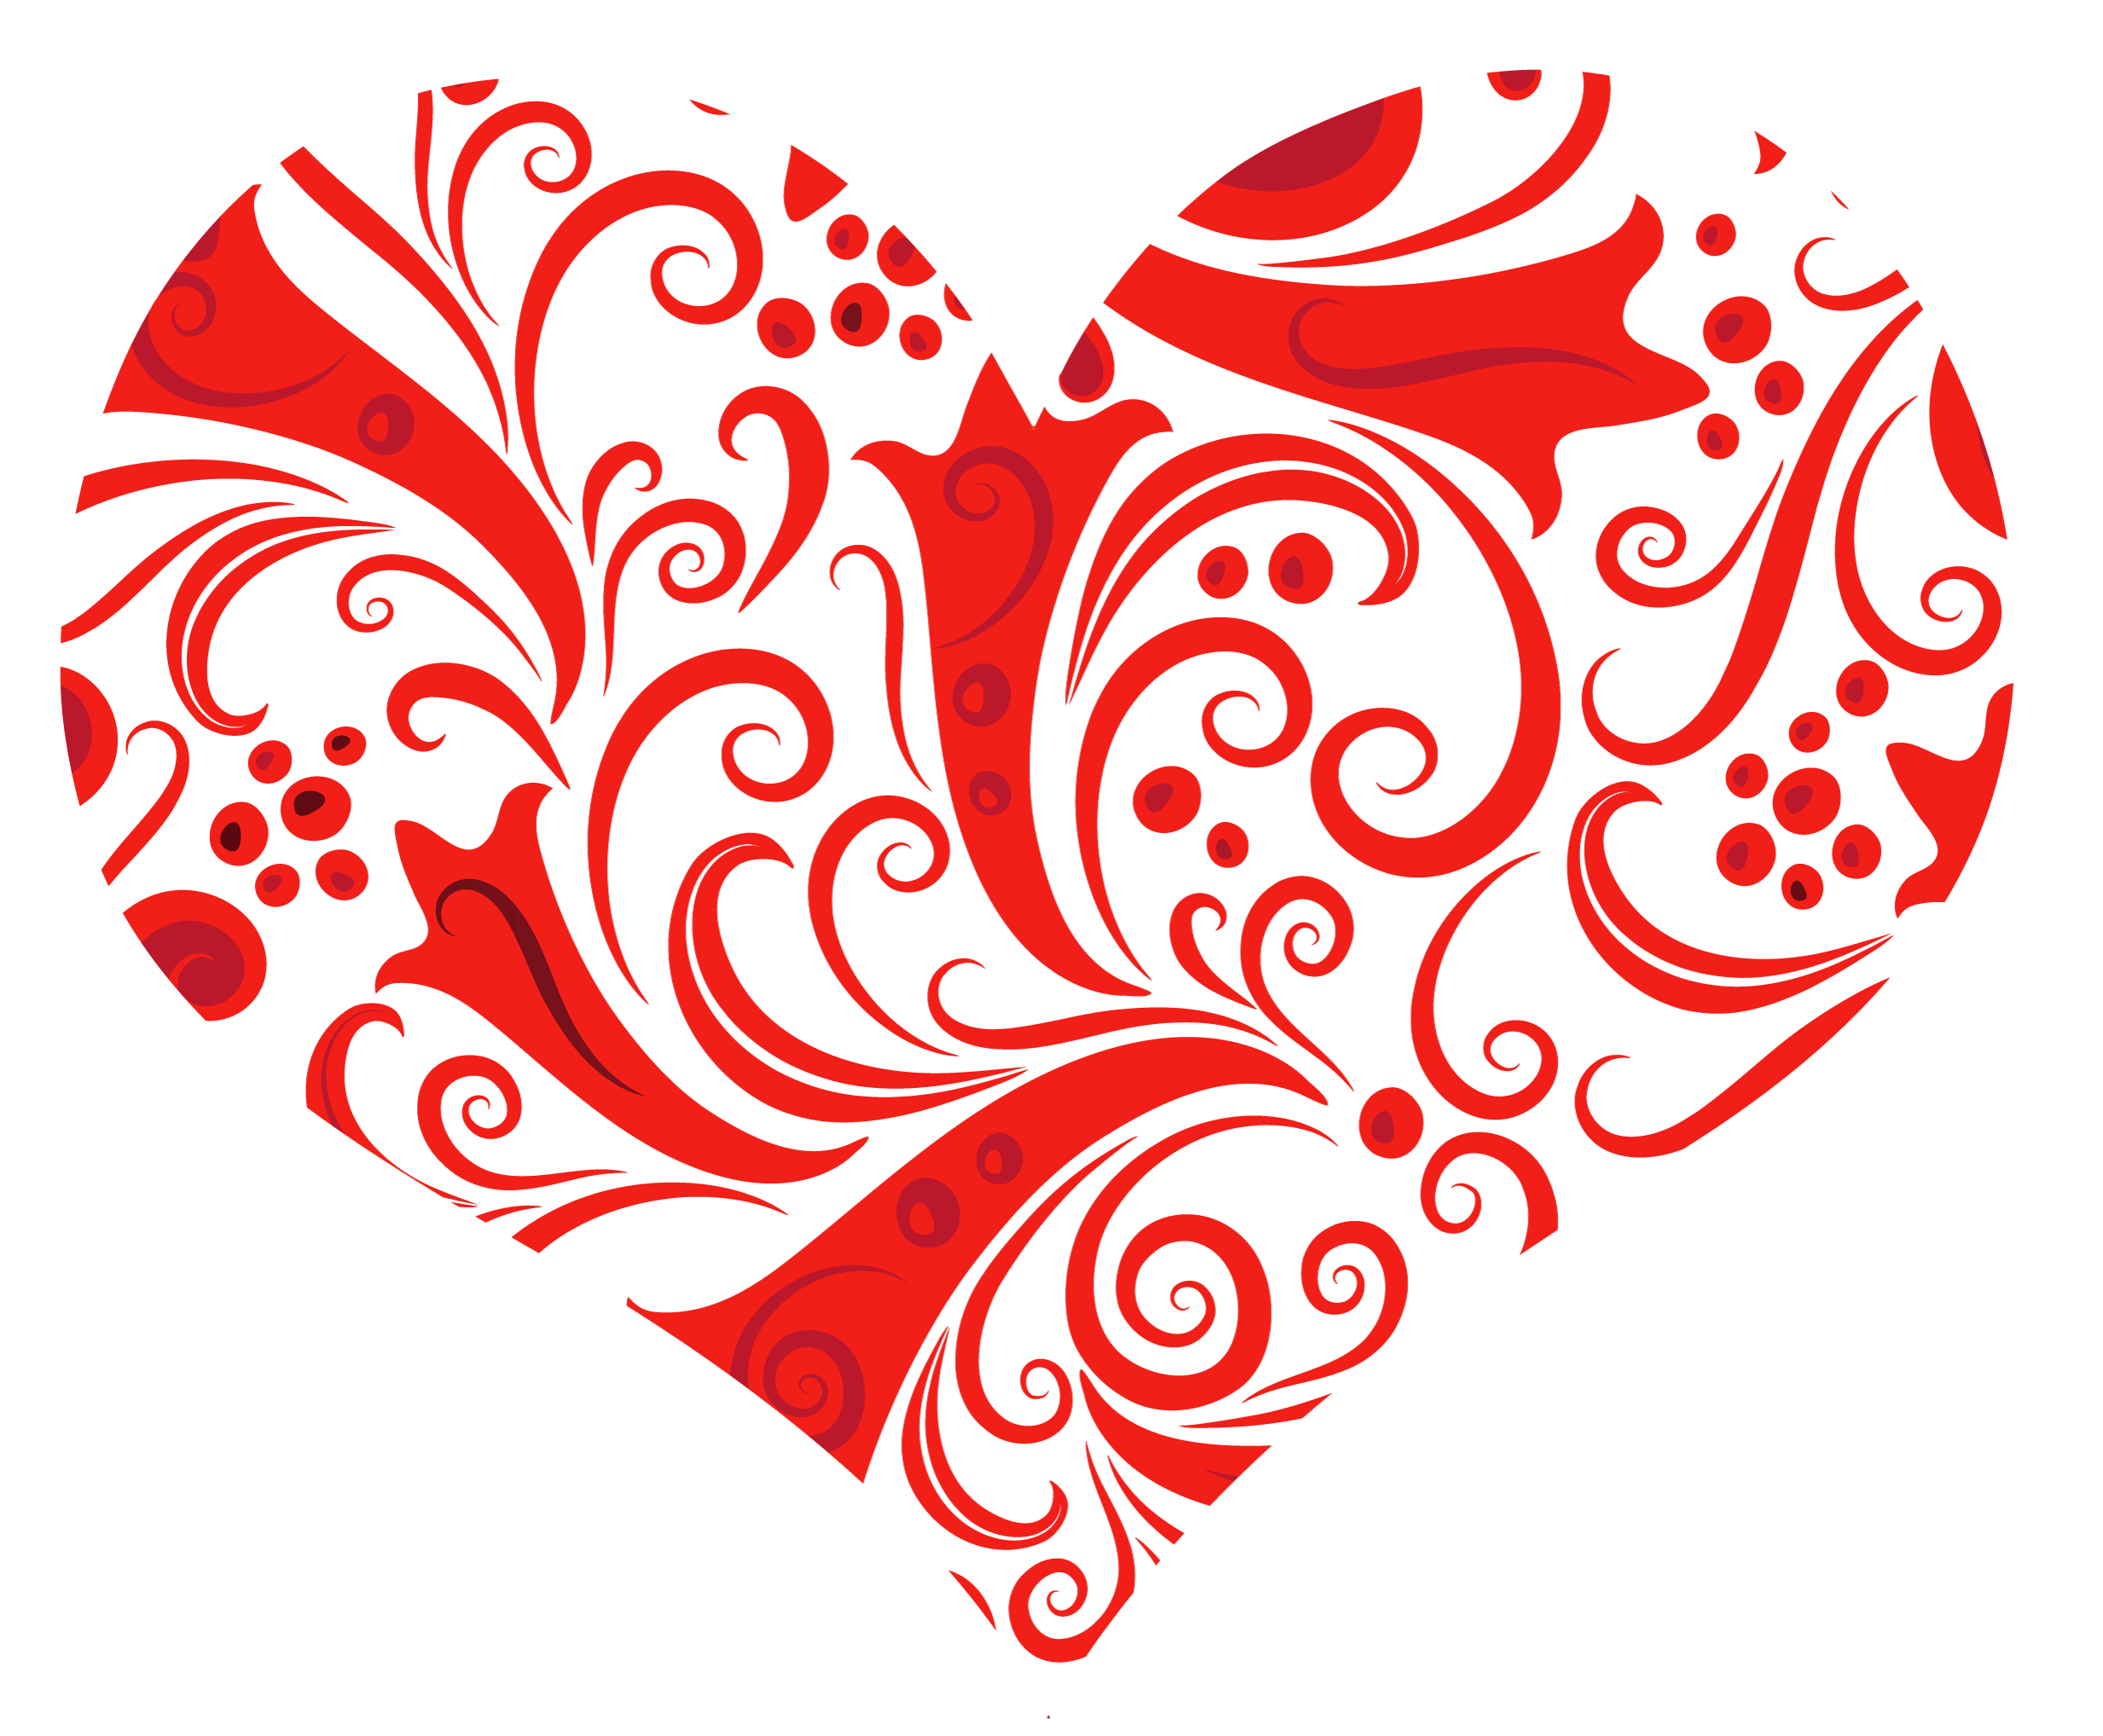 Transparent Heart Ornament Png